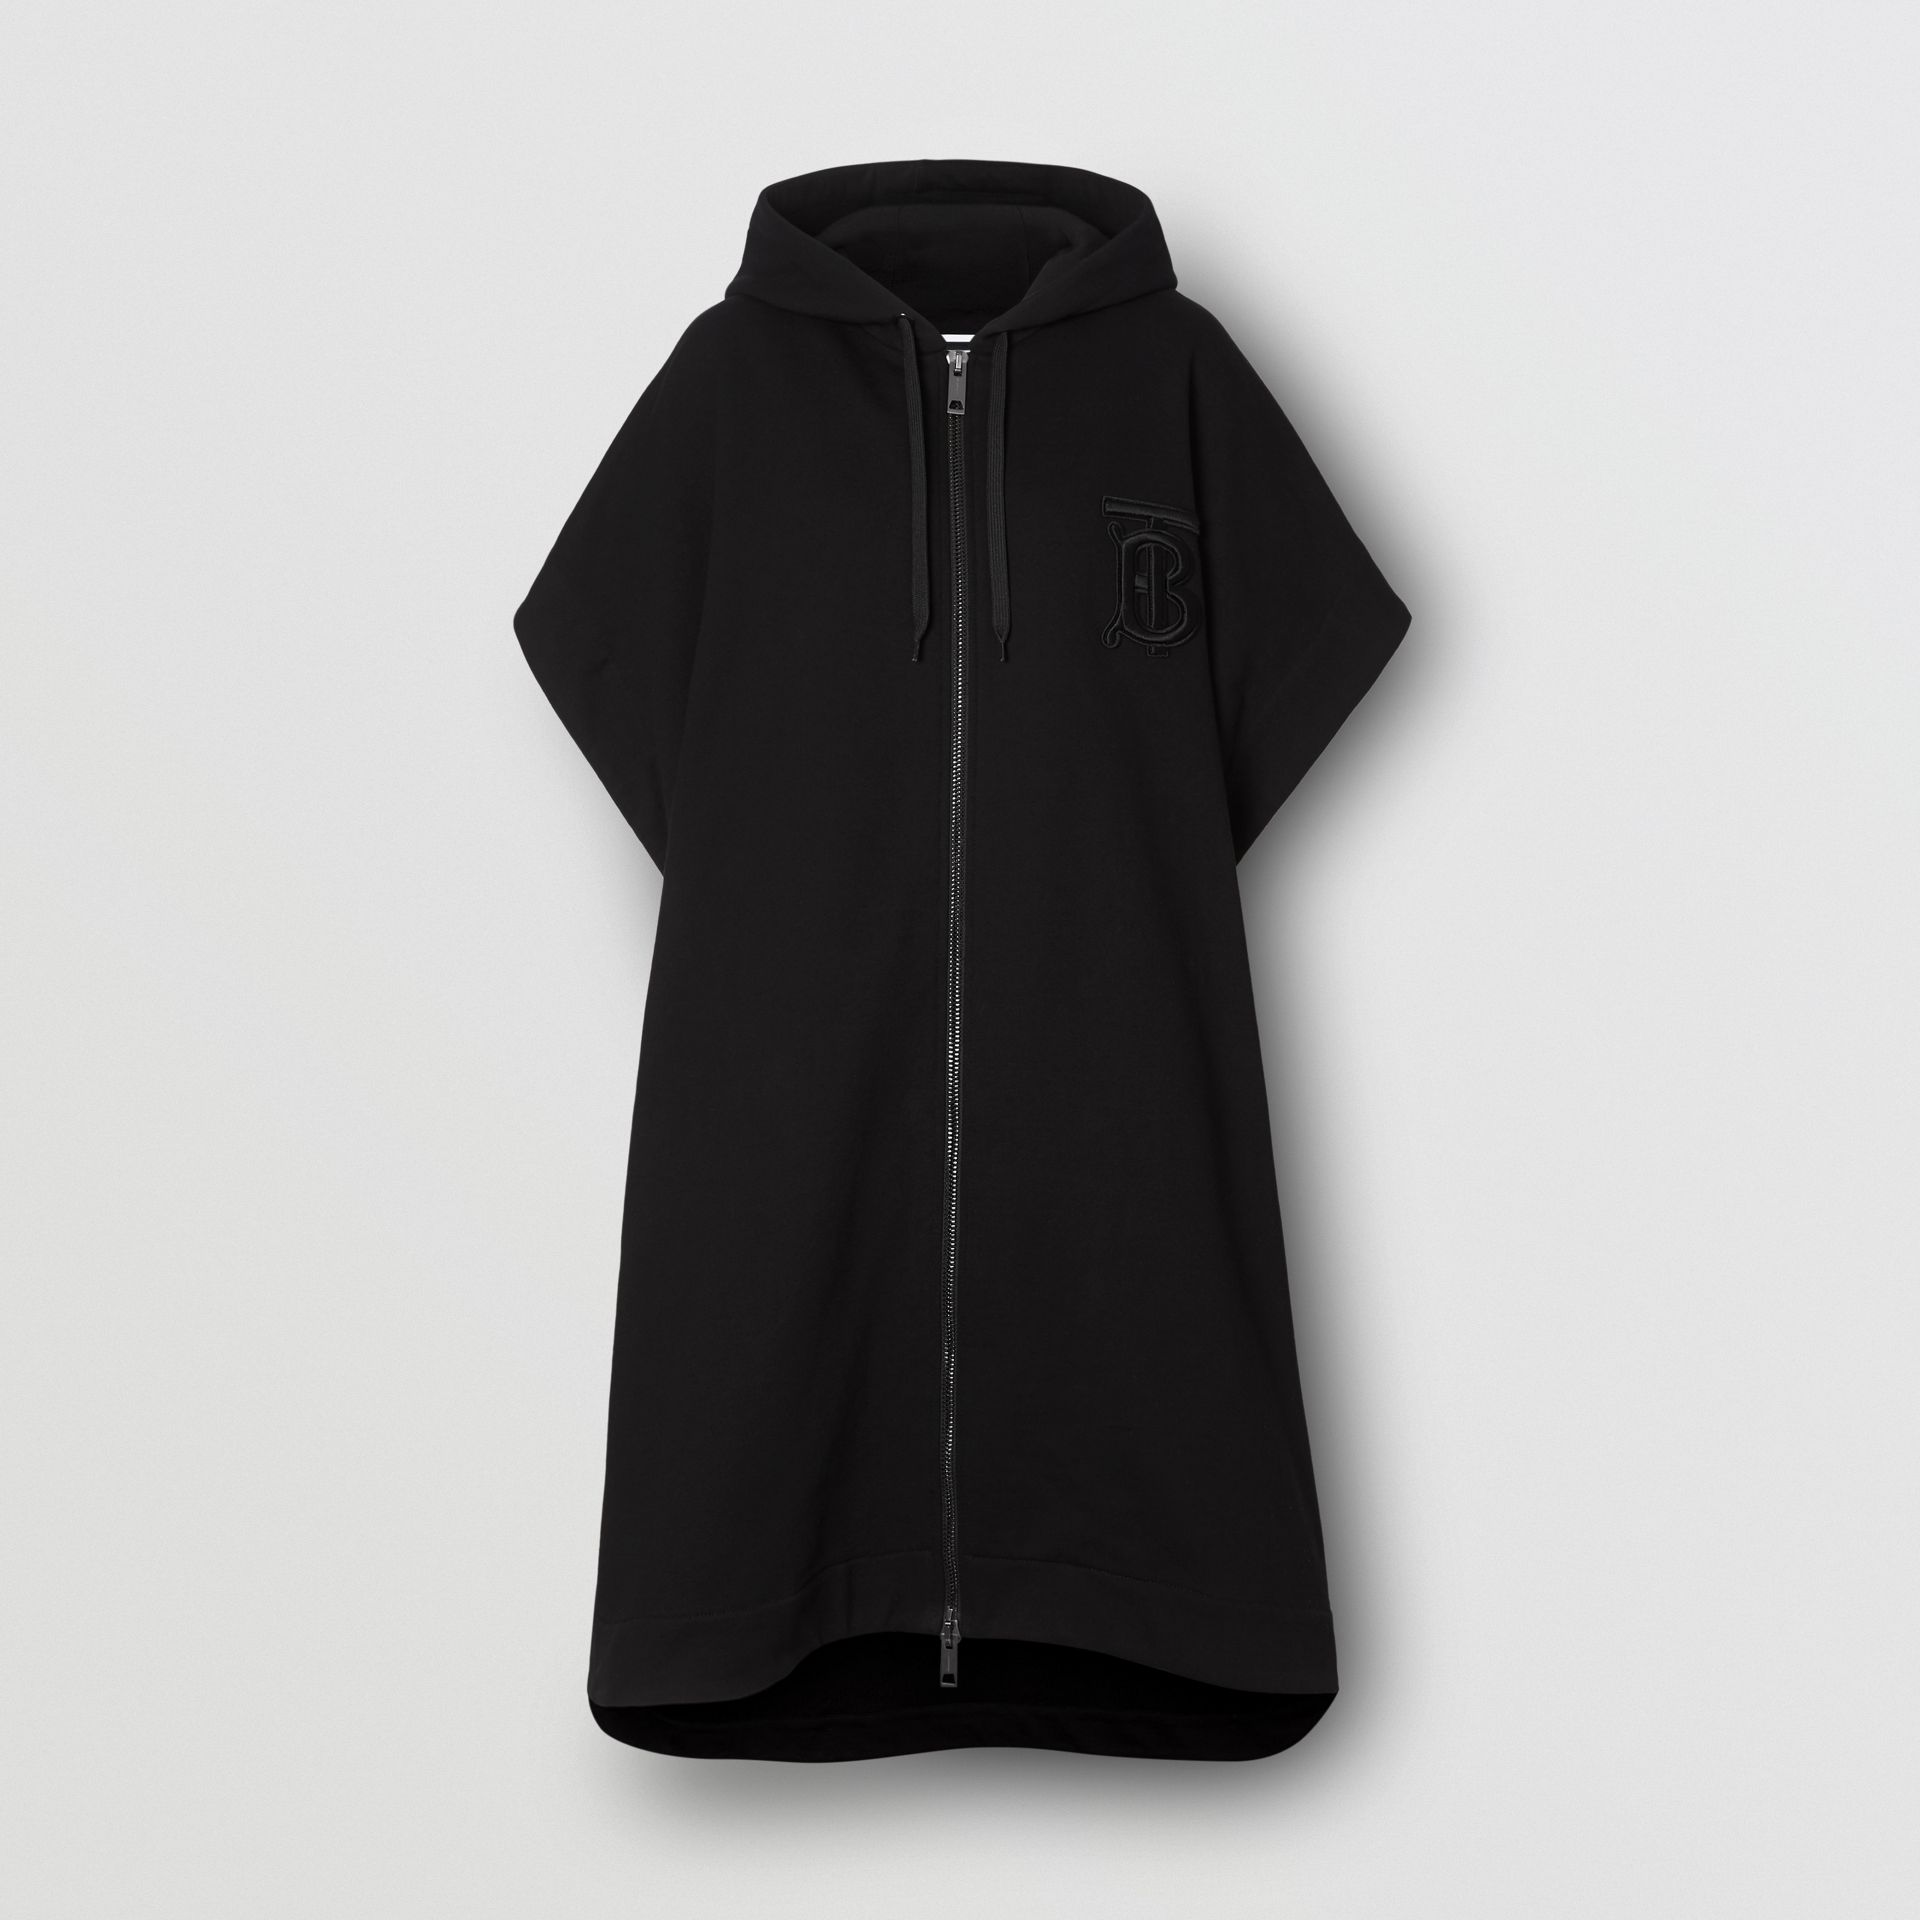 Monogram Motif Cotton Oversized Hooded Poncho in Black | Burberry United States - gallery image 3